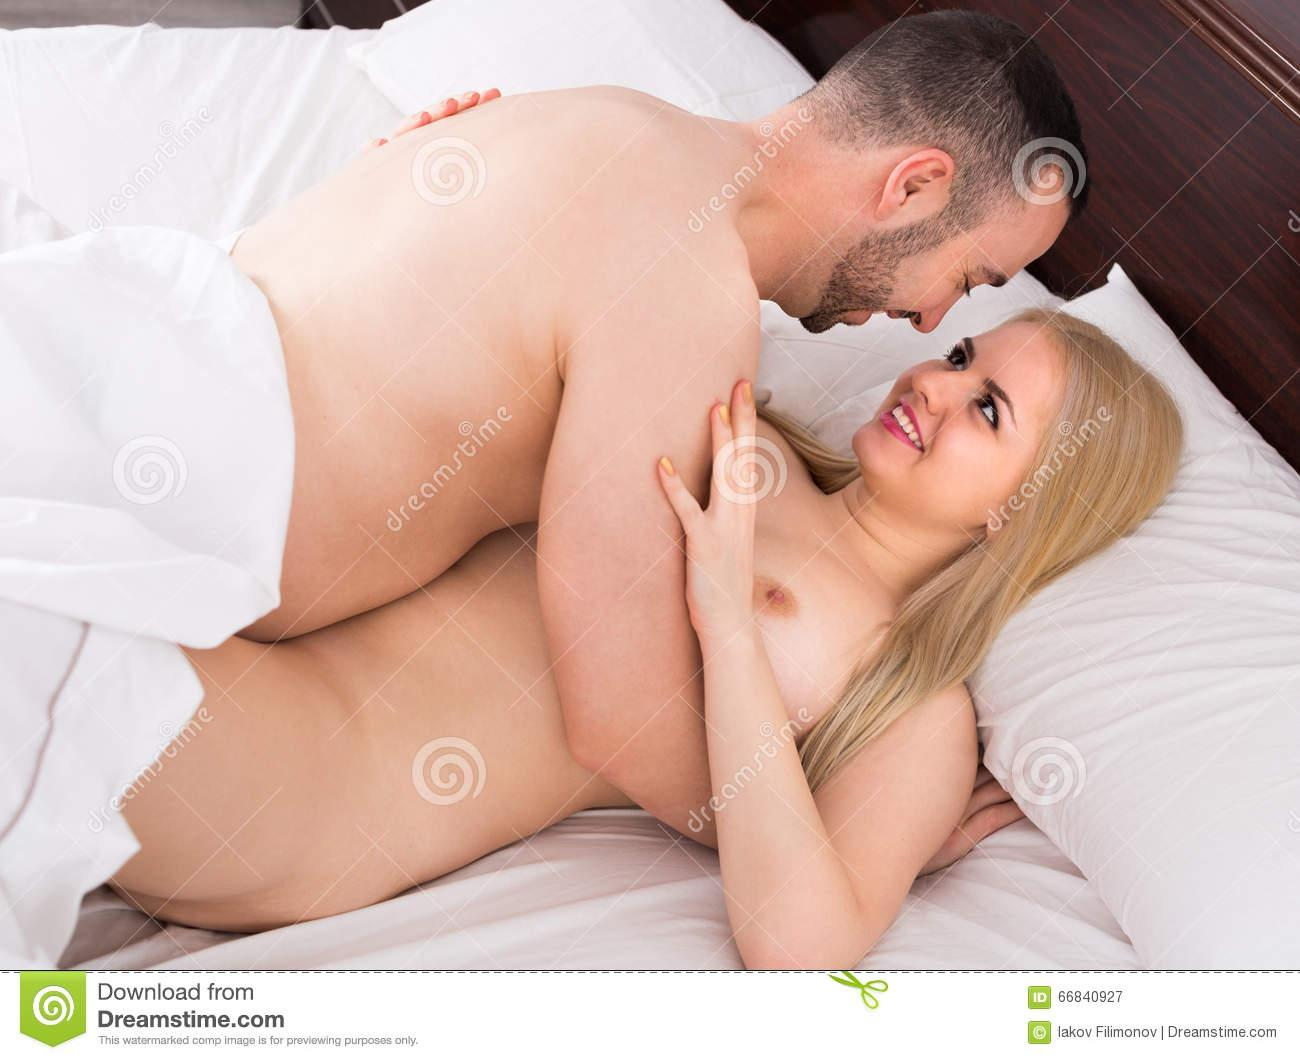 Softcorn couple having sex